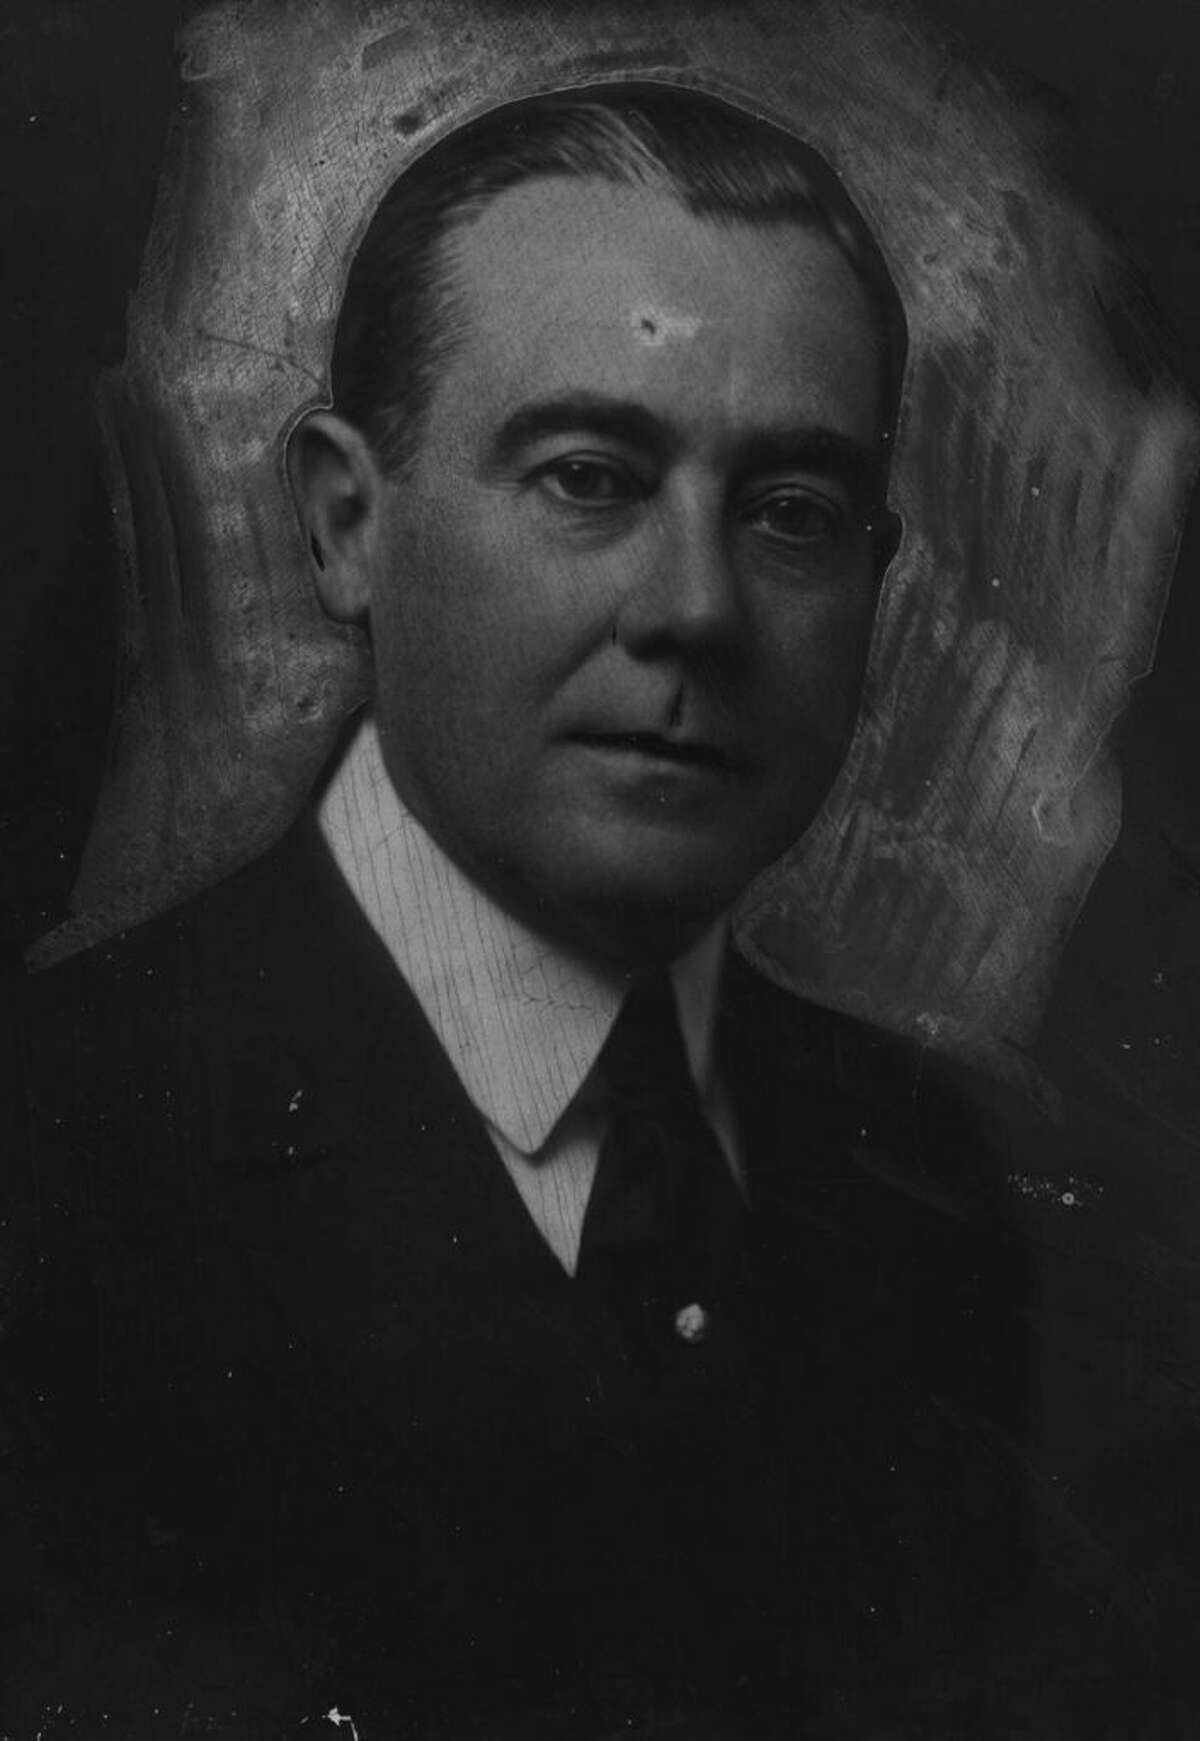 William Stormont Hacket Years in office: 1922 - 1926 Democrat William Stormont Hackett won election in the wake of a coal scandal in 1921, ending the Republican machine's longtime hold on the city's political levers.